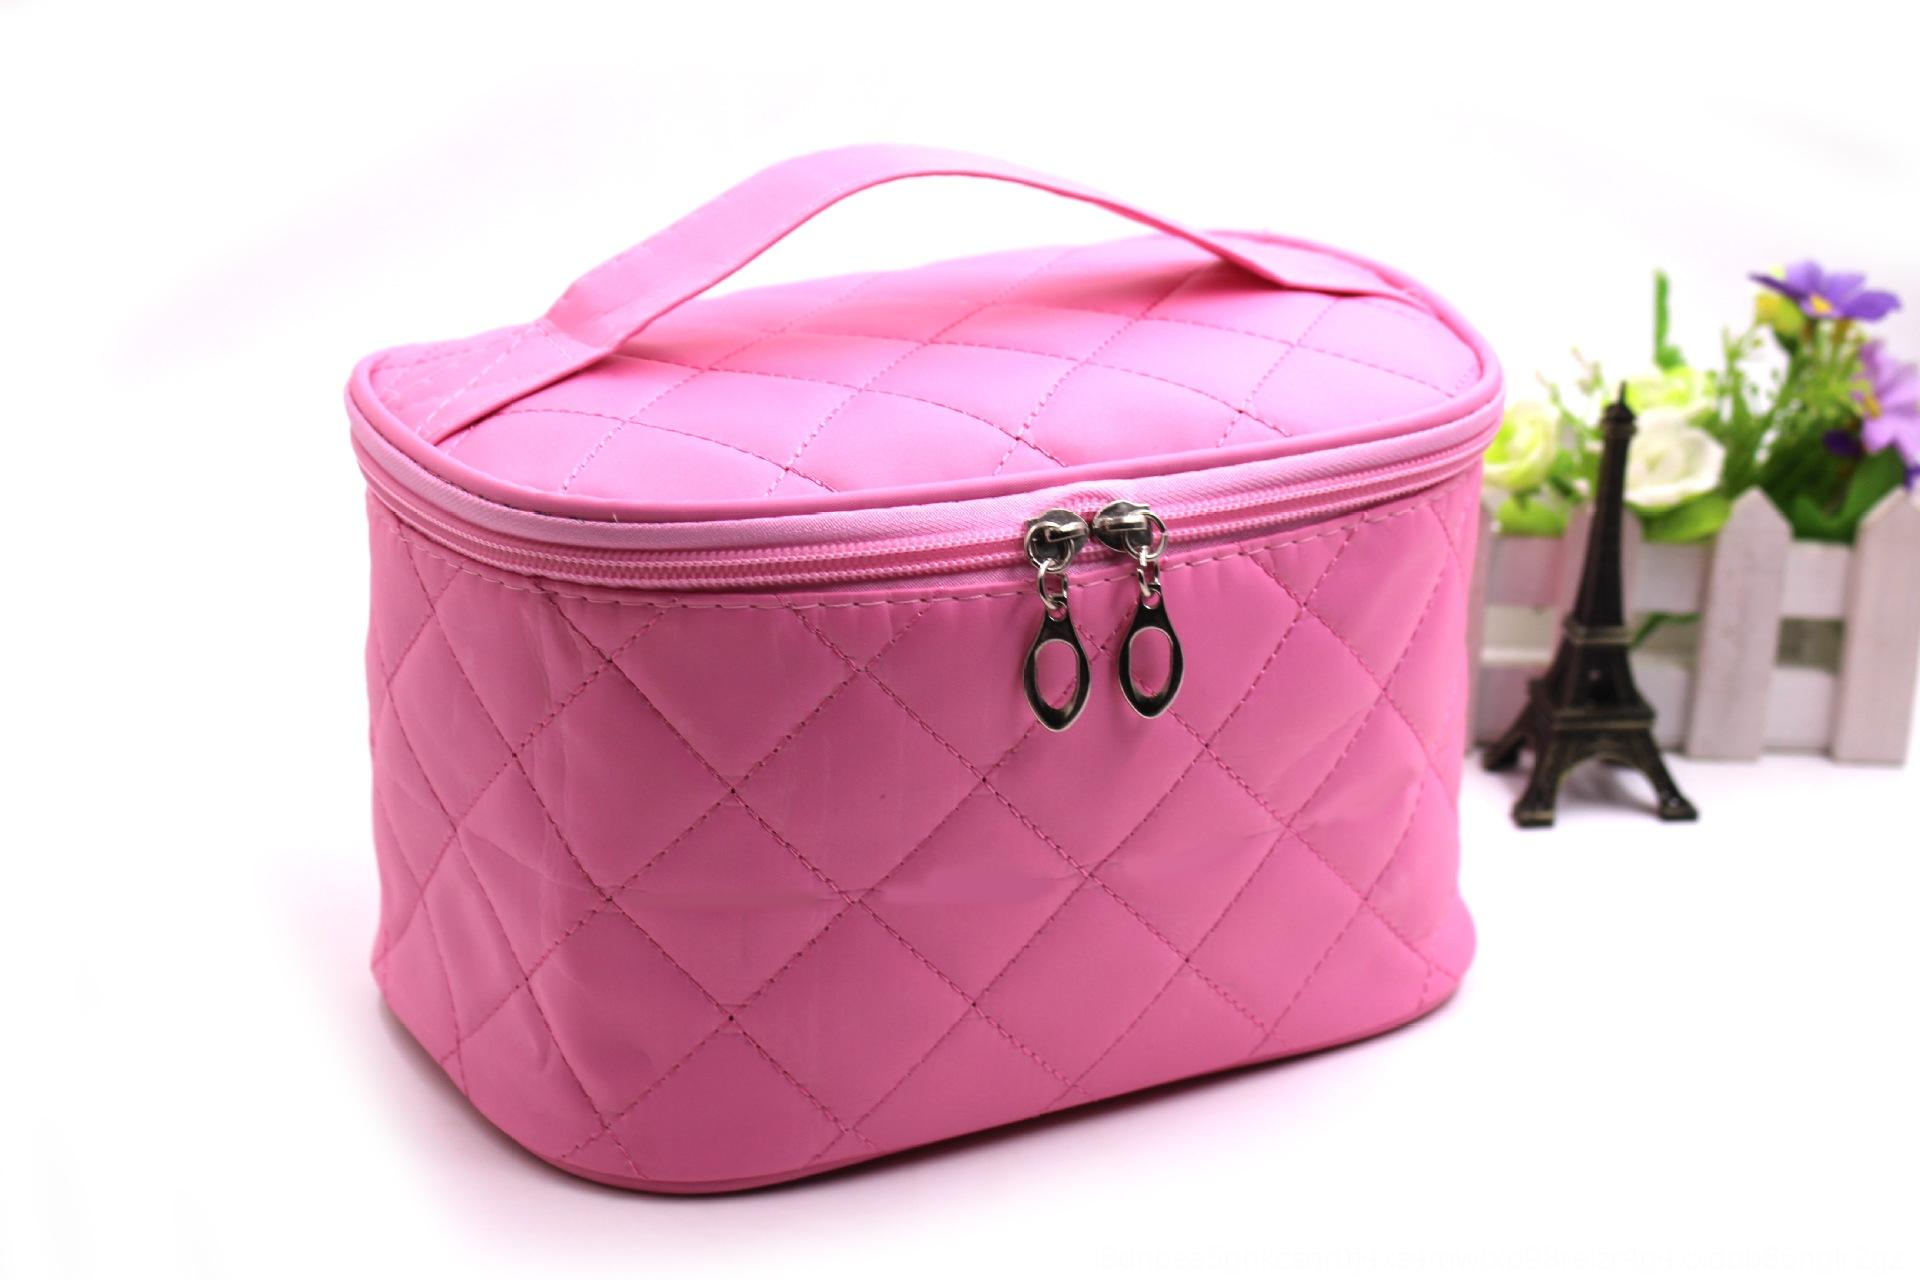 09ZVf Korean style diamond makeup Storage bagCosmetic Bag small bagquilted women's cosmetic portable mirror embroidered storage bag productio